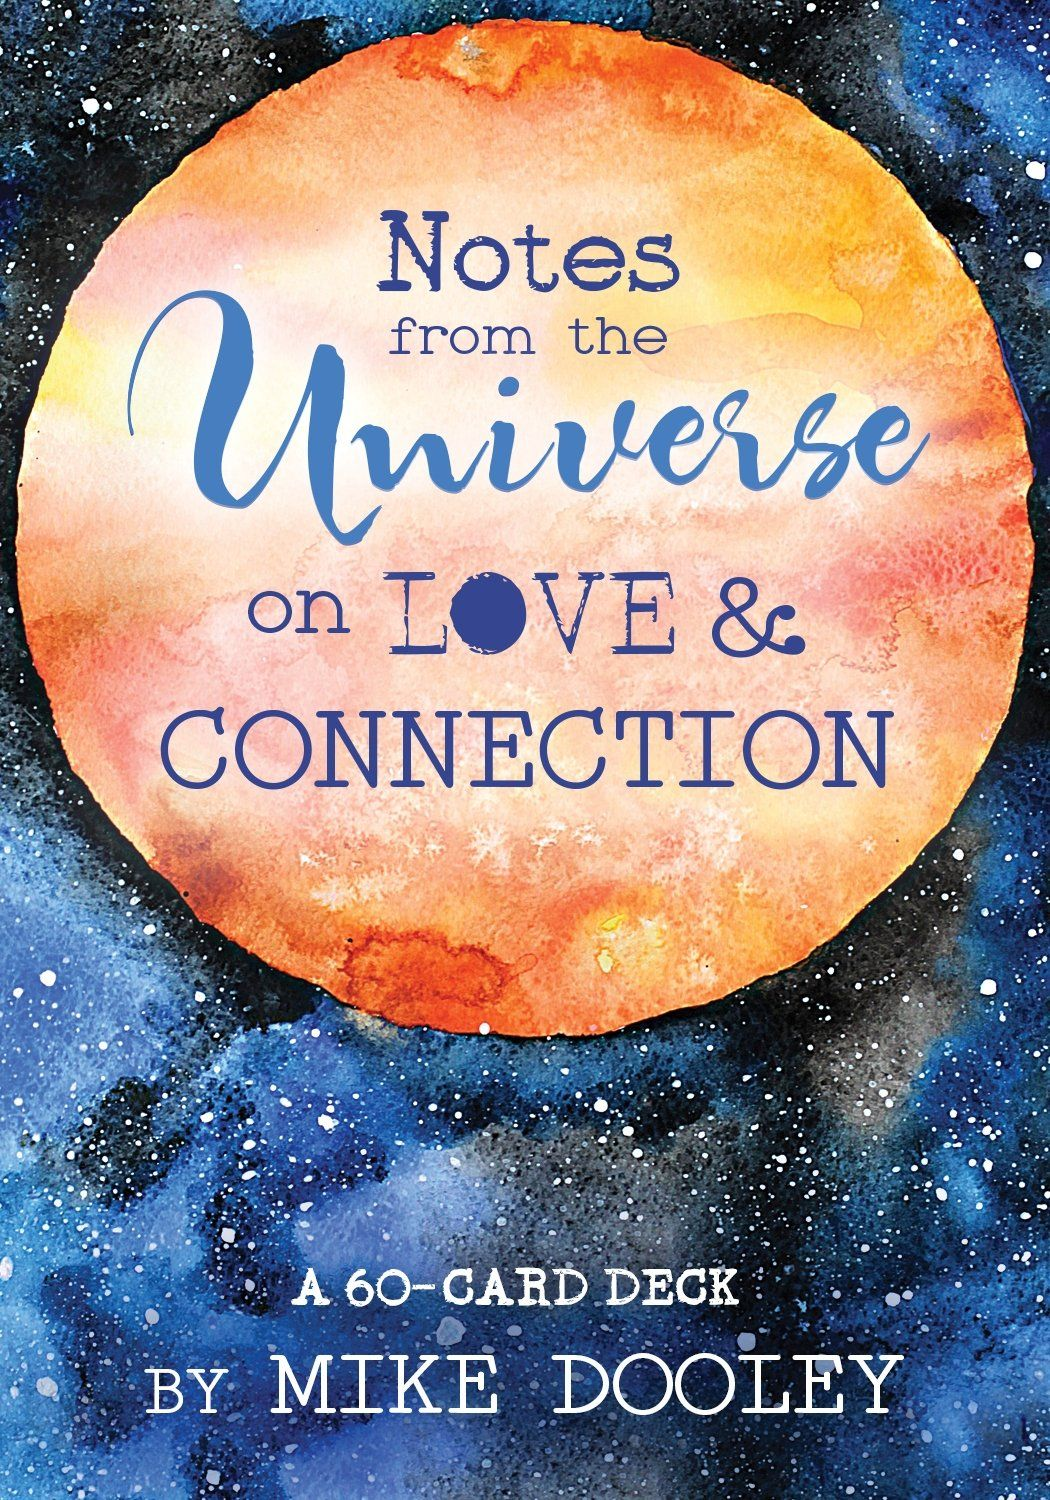 Notes from the Universe on Love & Connection  Card Deck by Mike Dooley